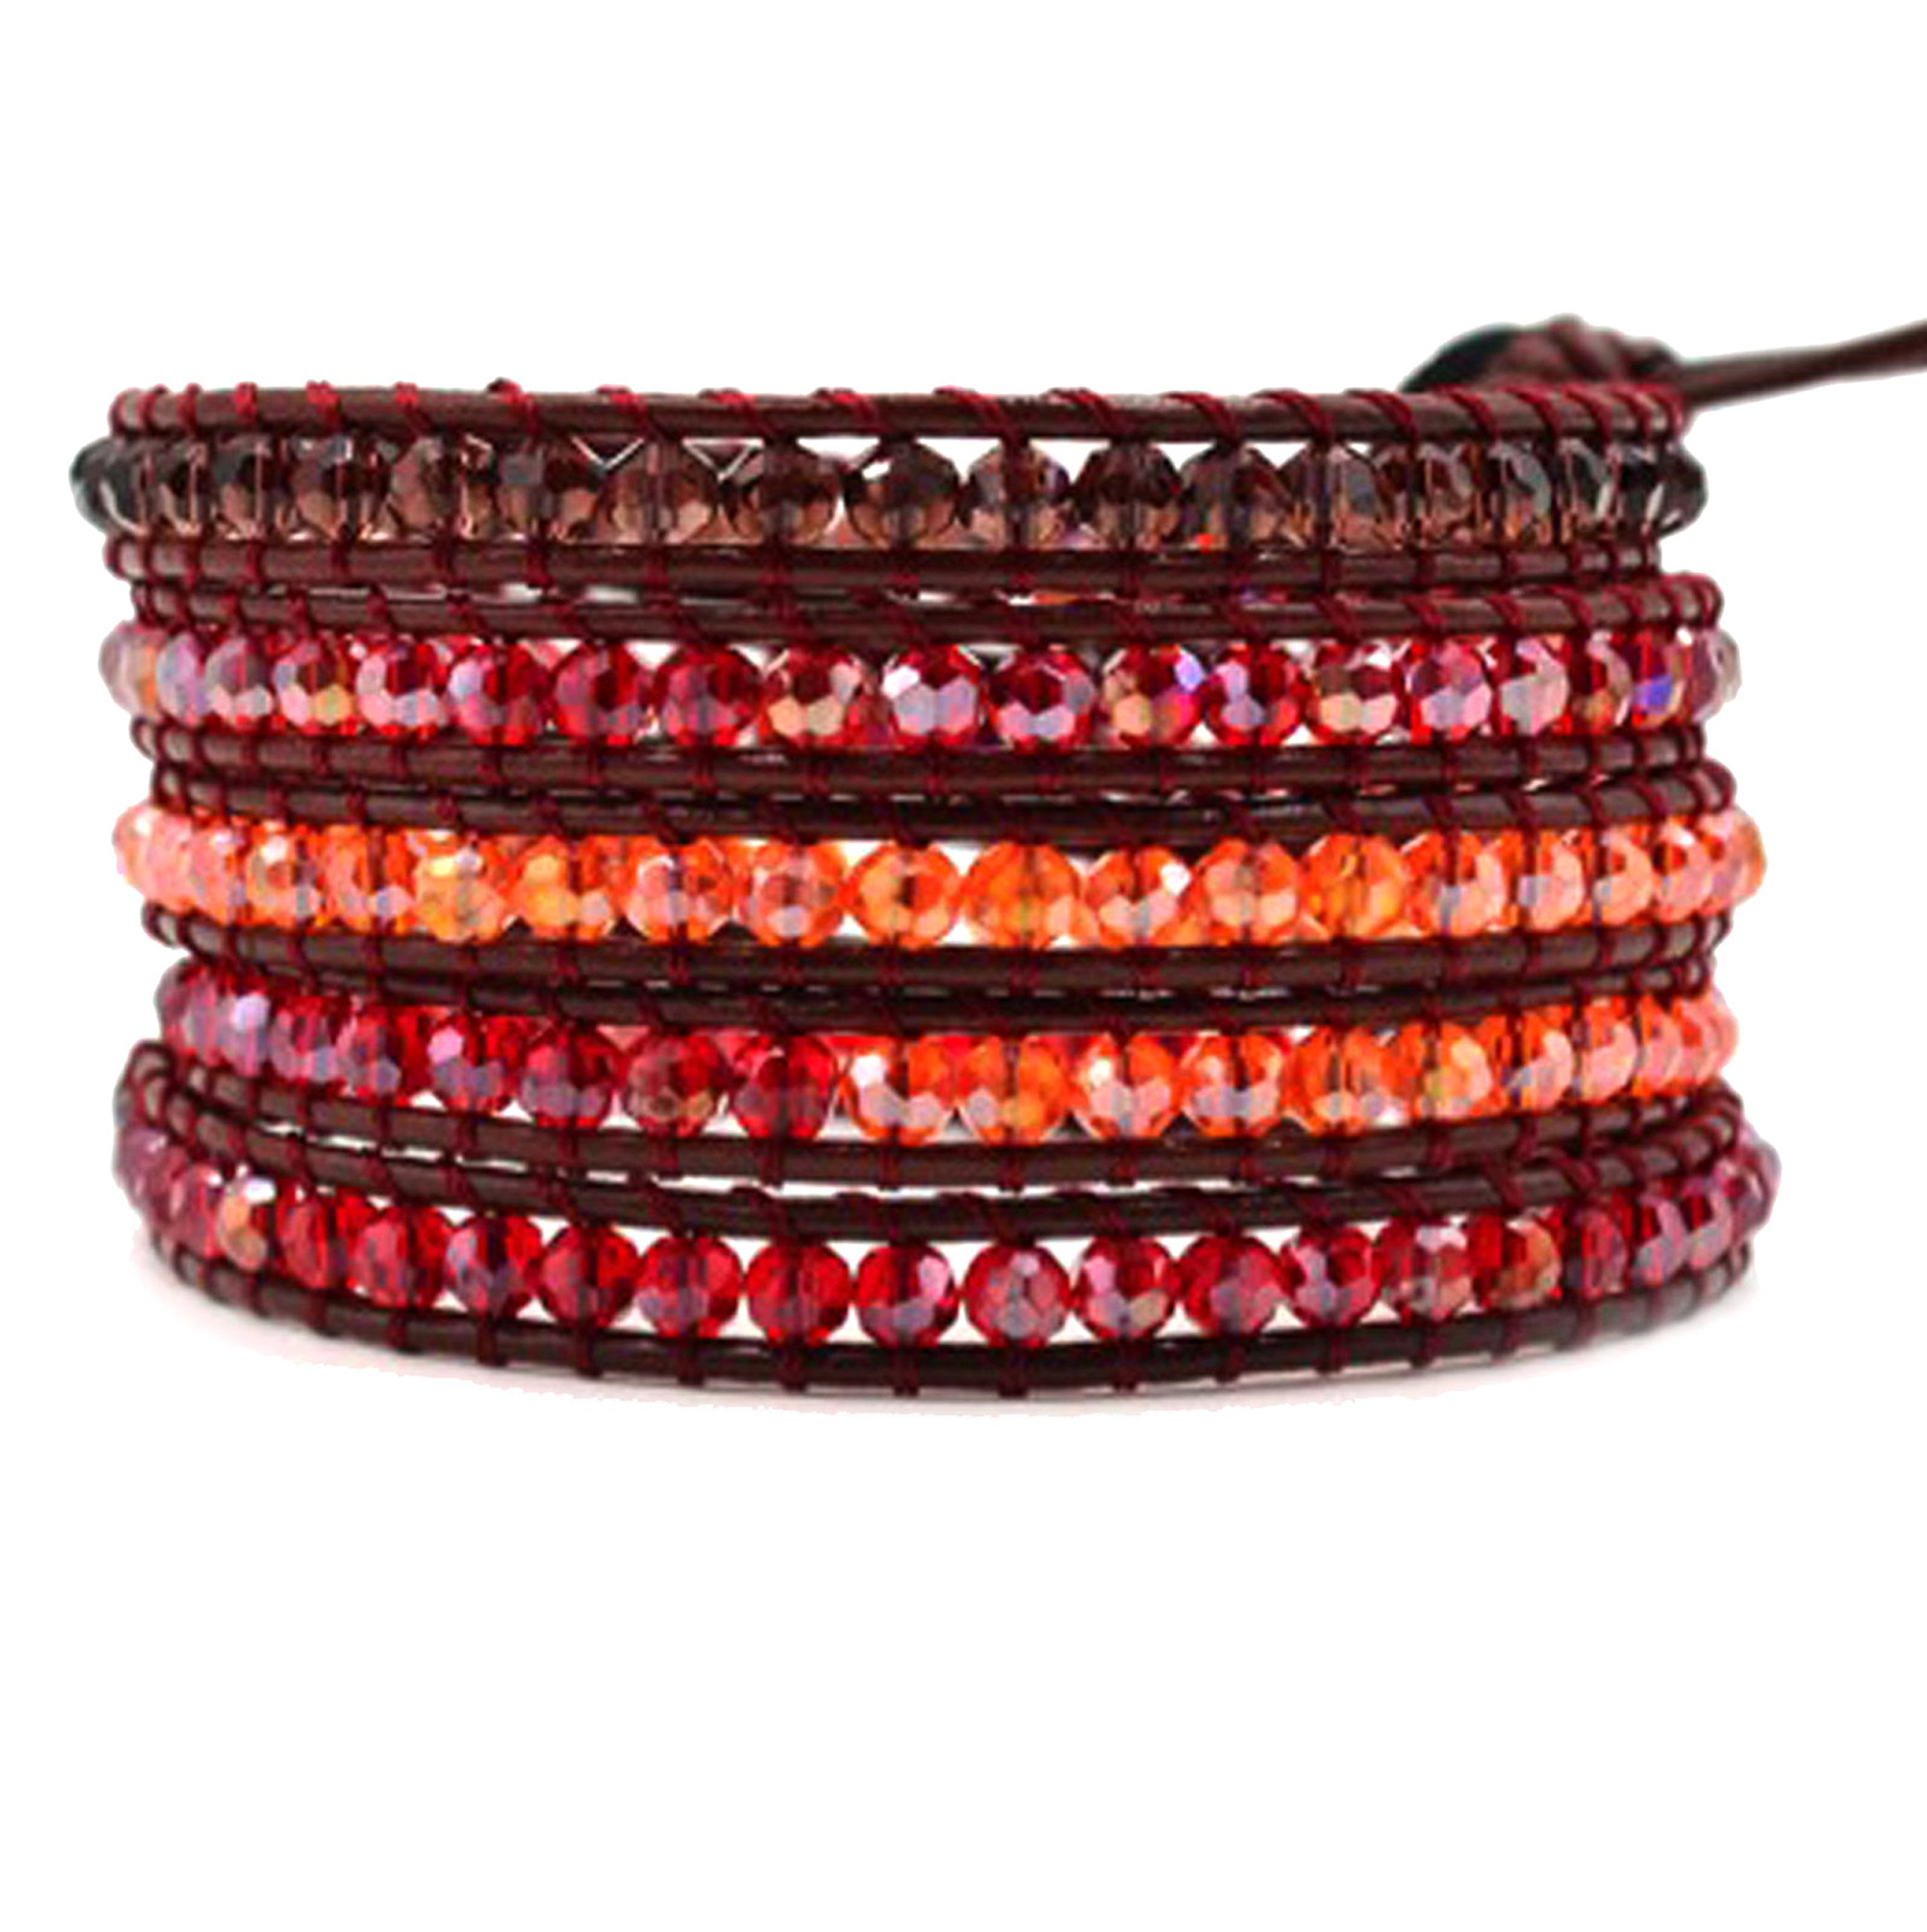 Red Crystal Wrap Bracelet Handmade Woven Brown Leather Multilayer 4 mm Bangle Boho Style